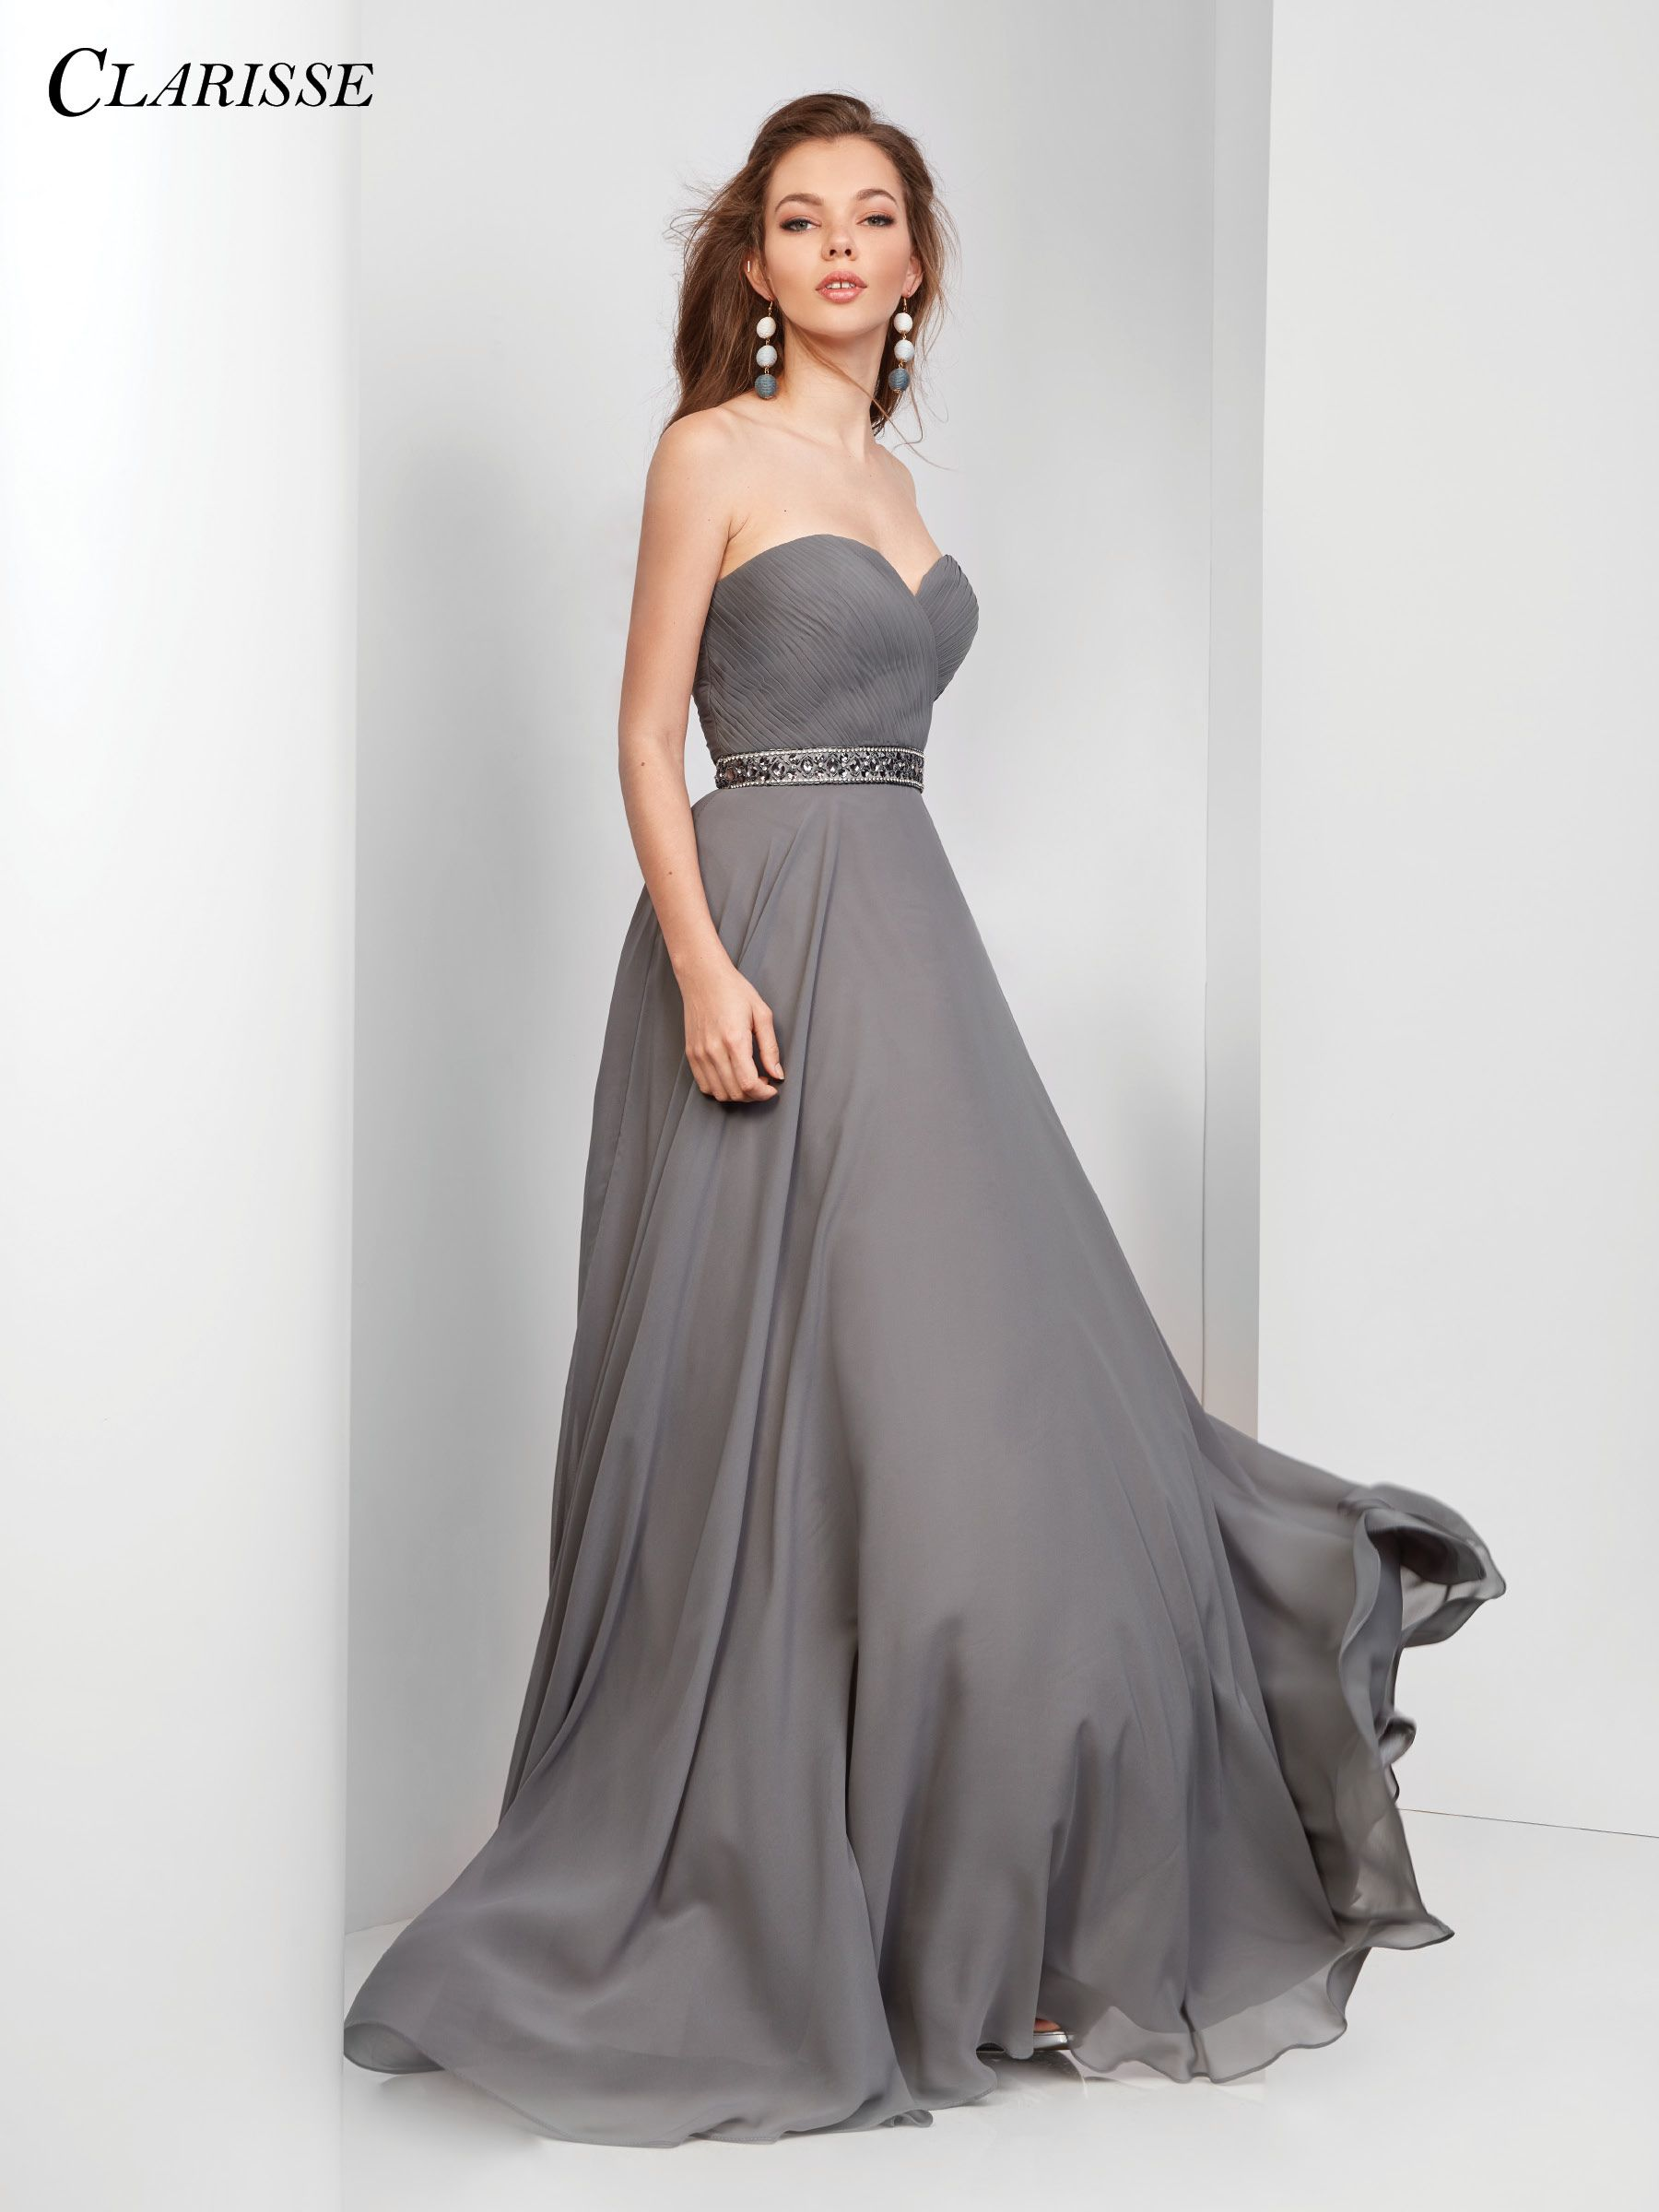 Pin By Clarisse Designs On Clarisse Prom 2018 Pinterest Dresses